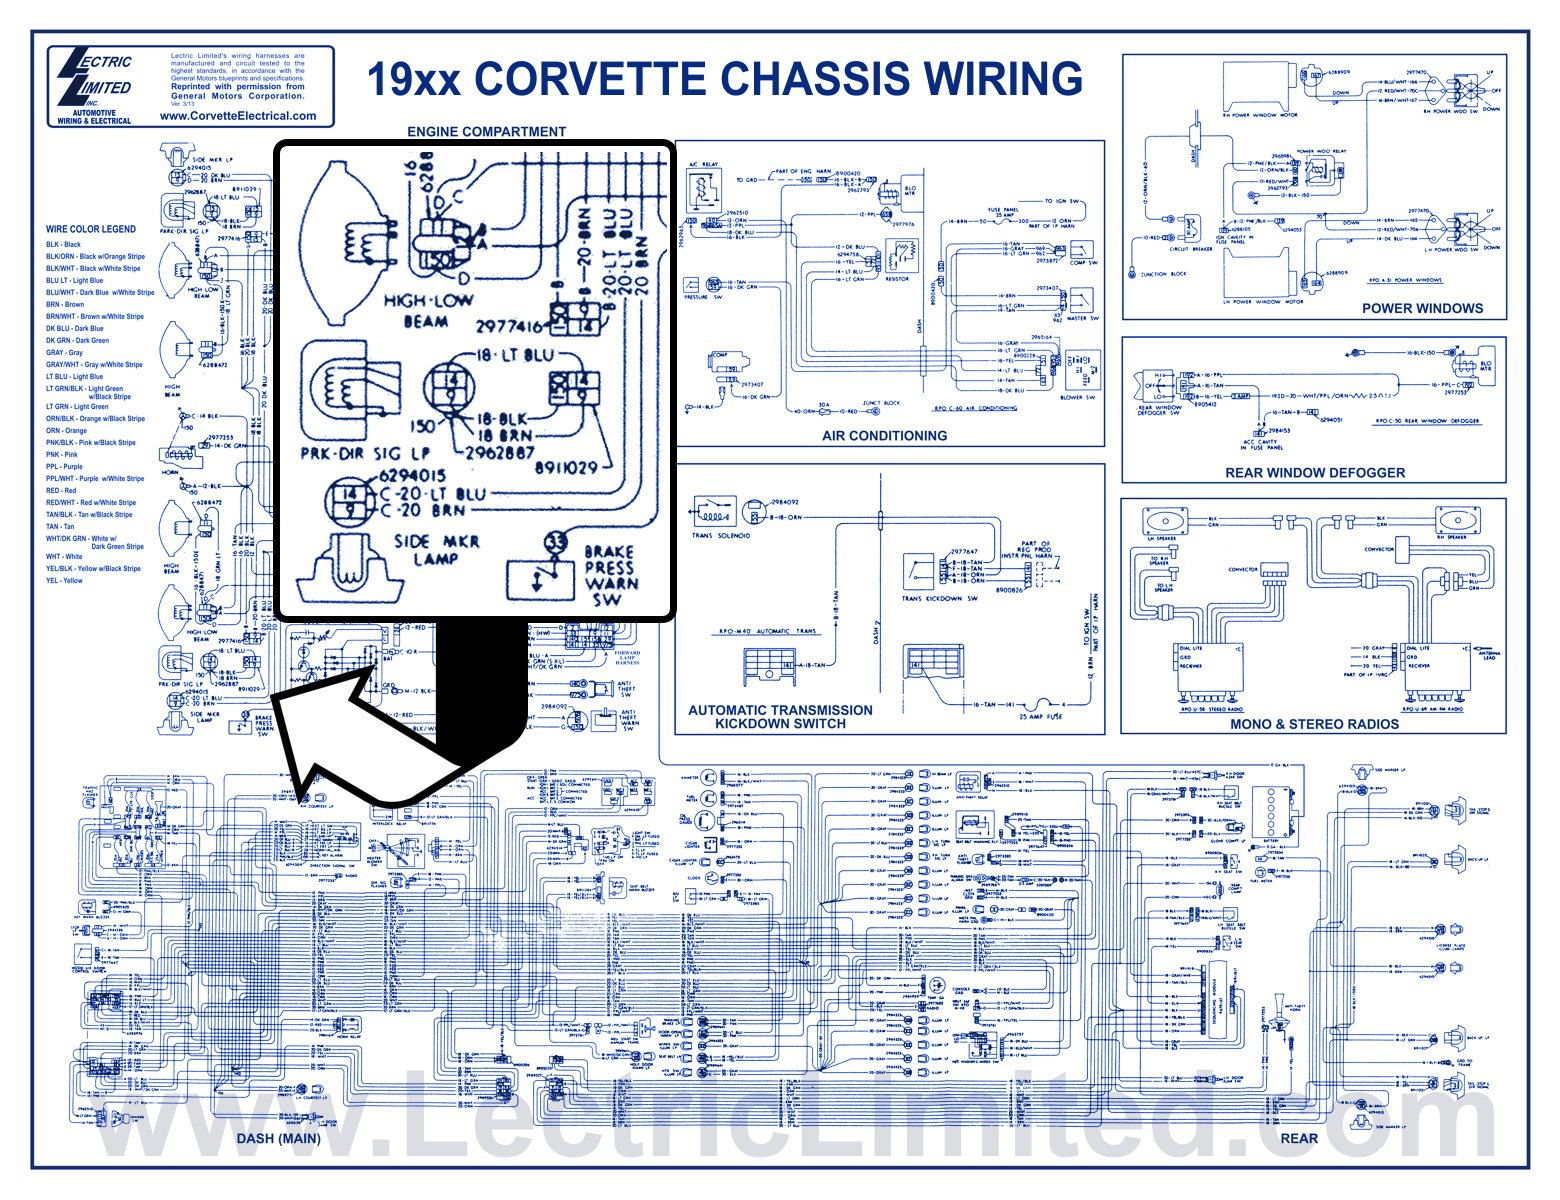 1973 camaro wiring diagram 1974 camaro wiring diagram 1980 Corvette Wiring  Schematic 80 Corvette Wiring Diagram